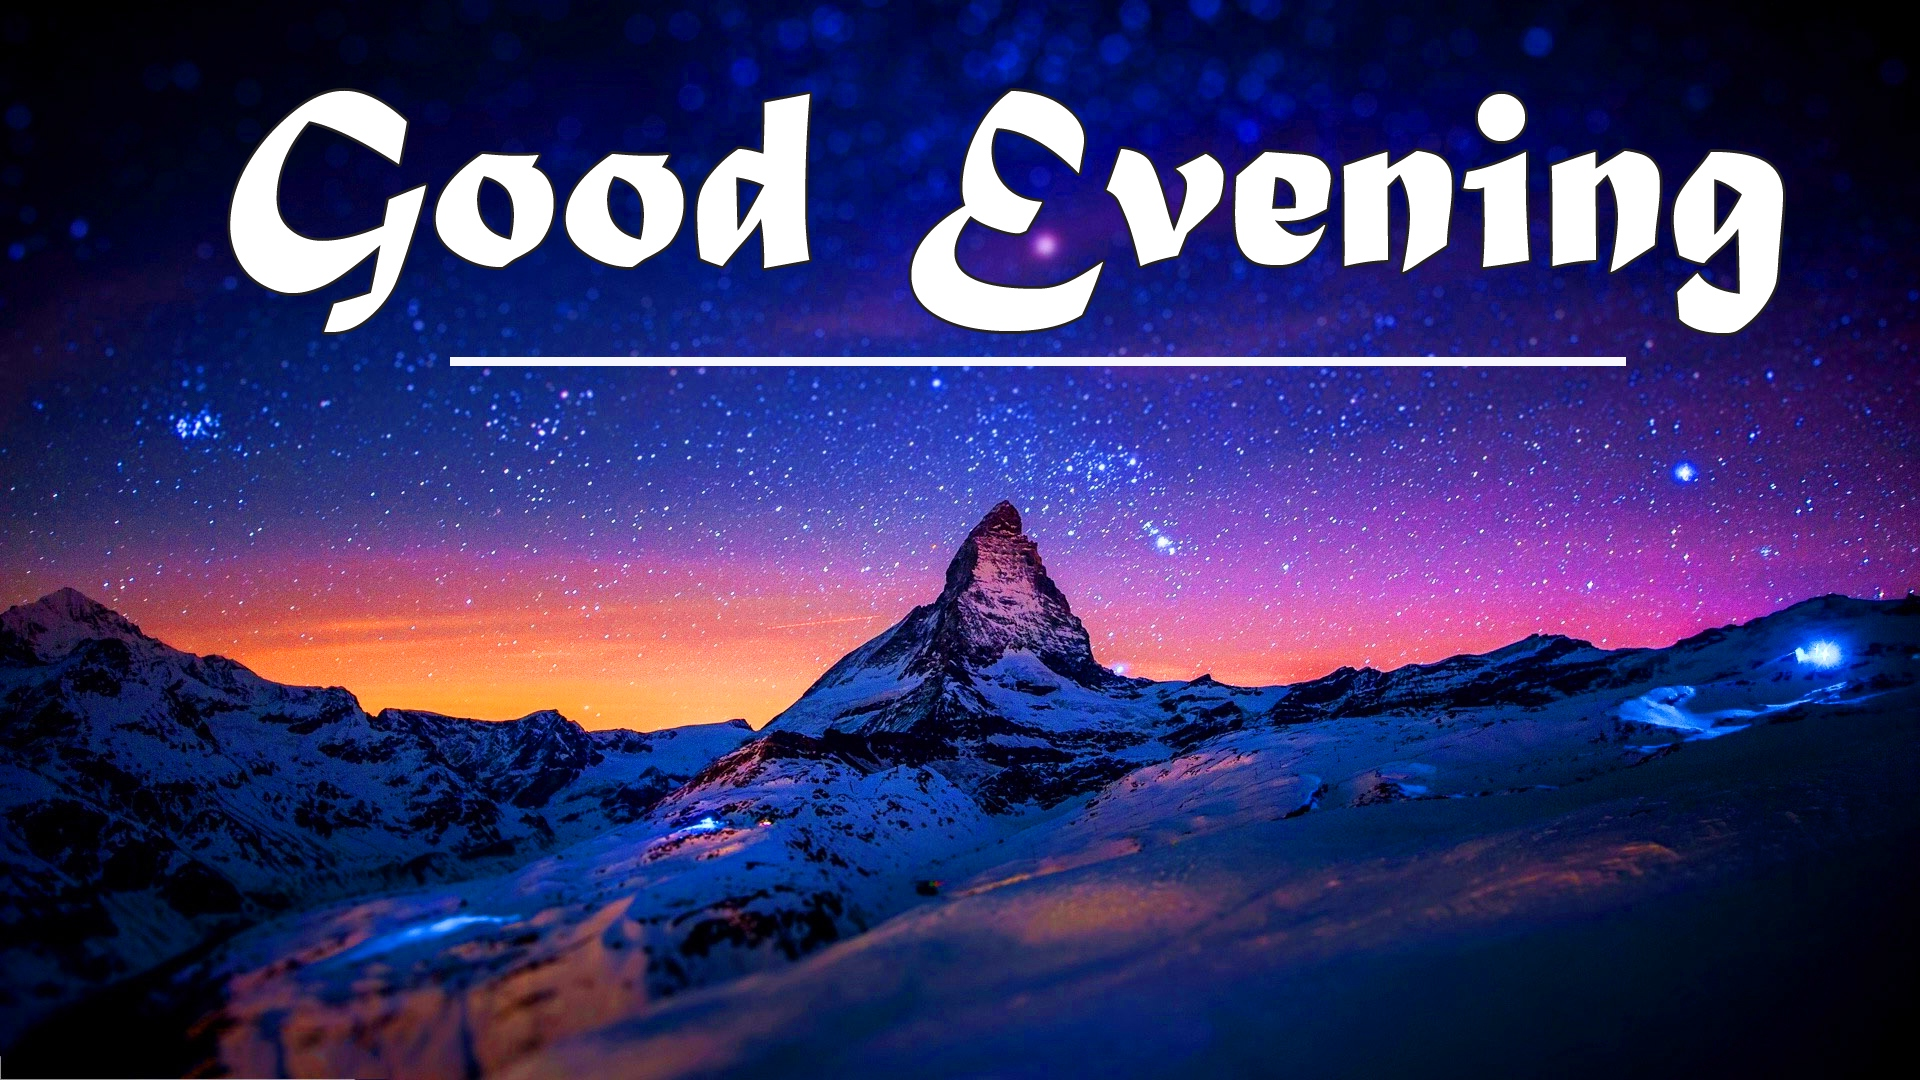 Good Evening Images Wallpaper Free